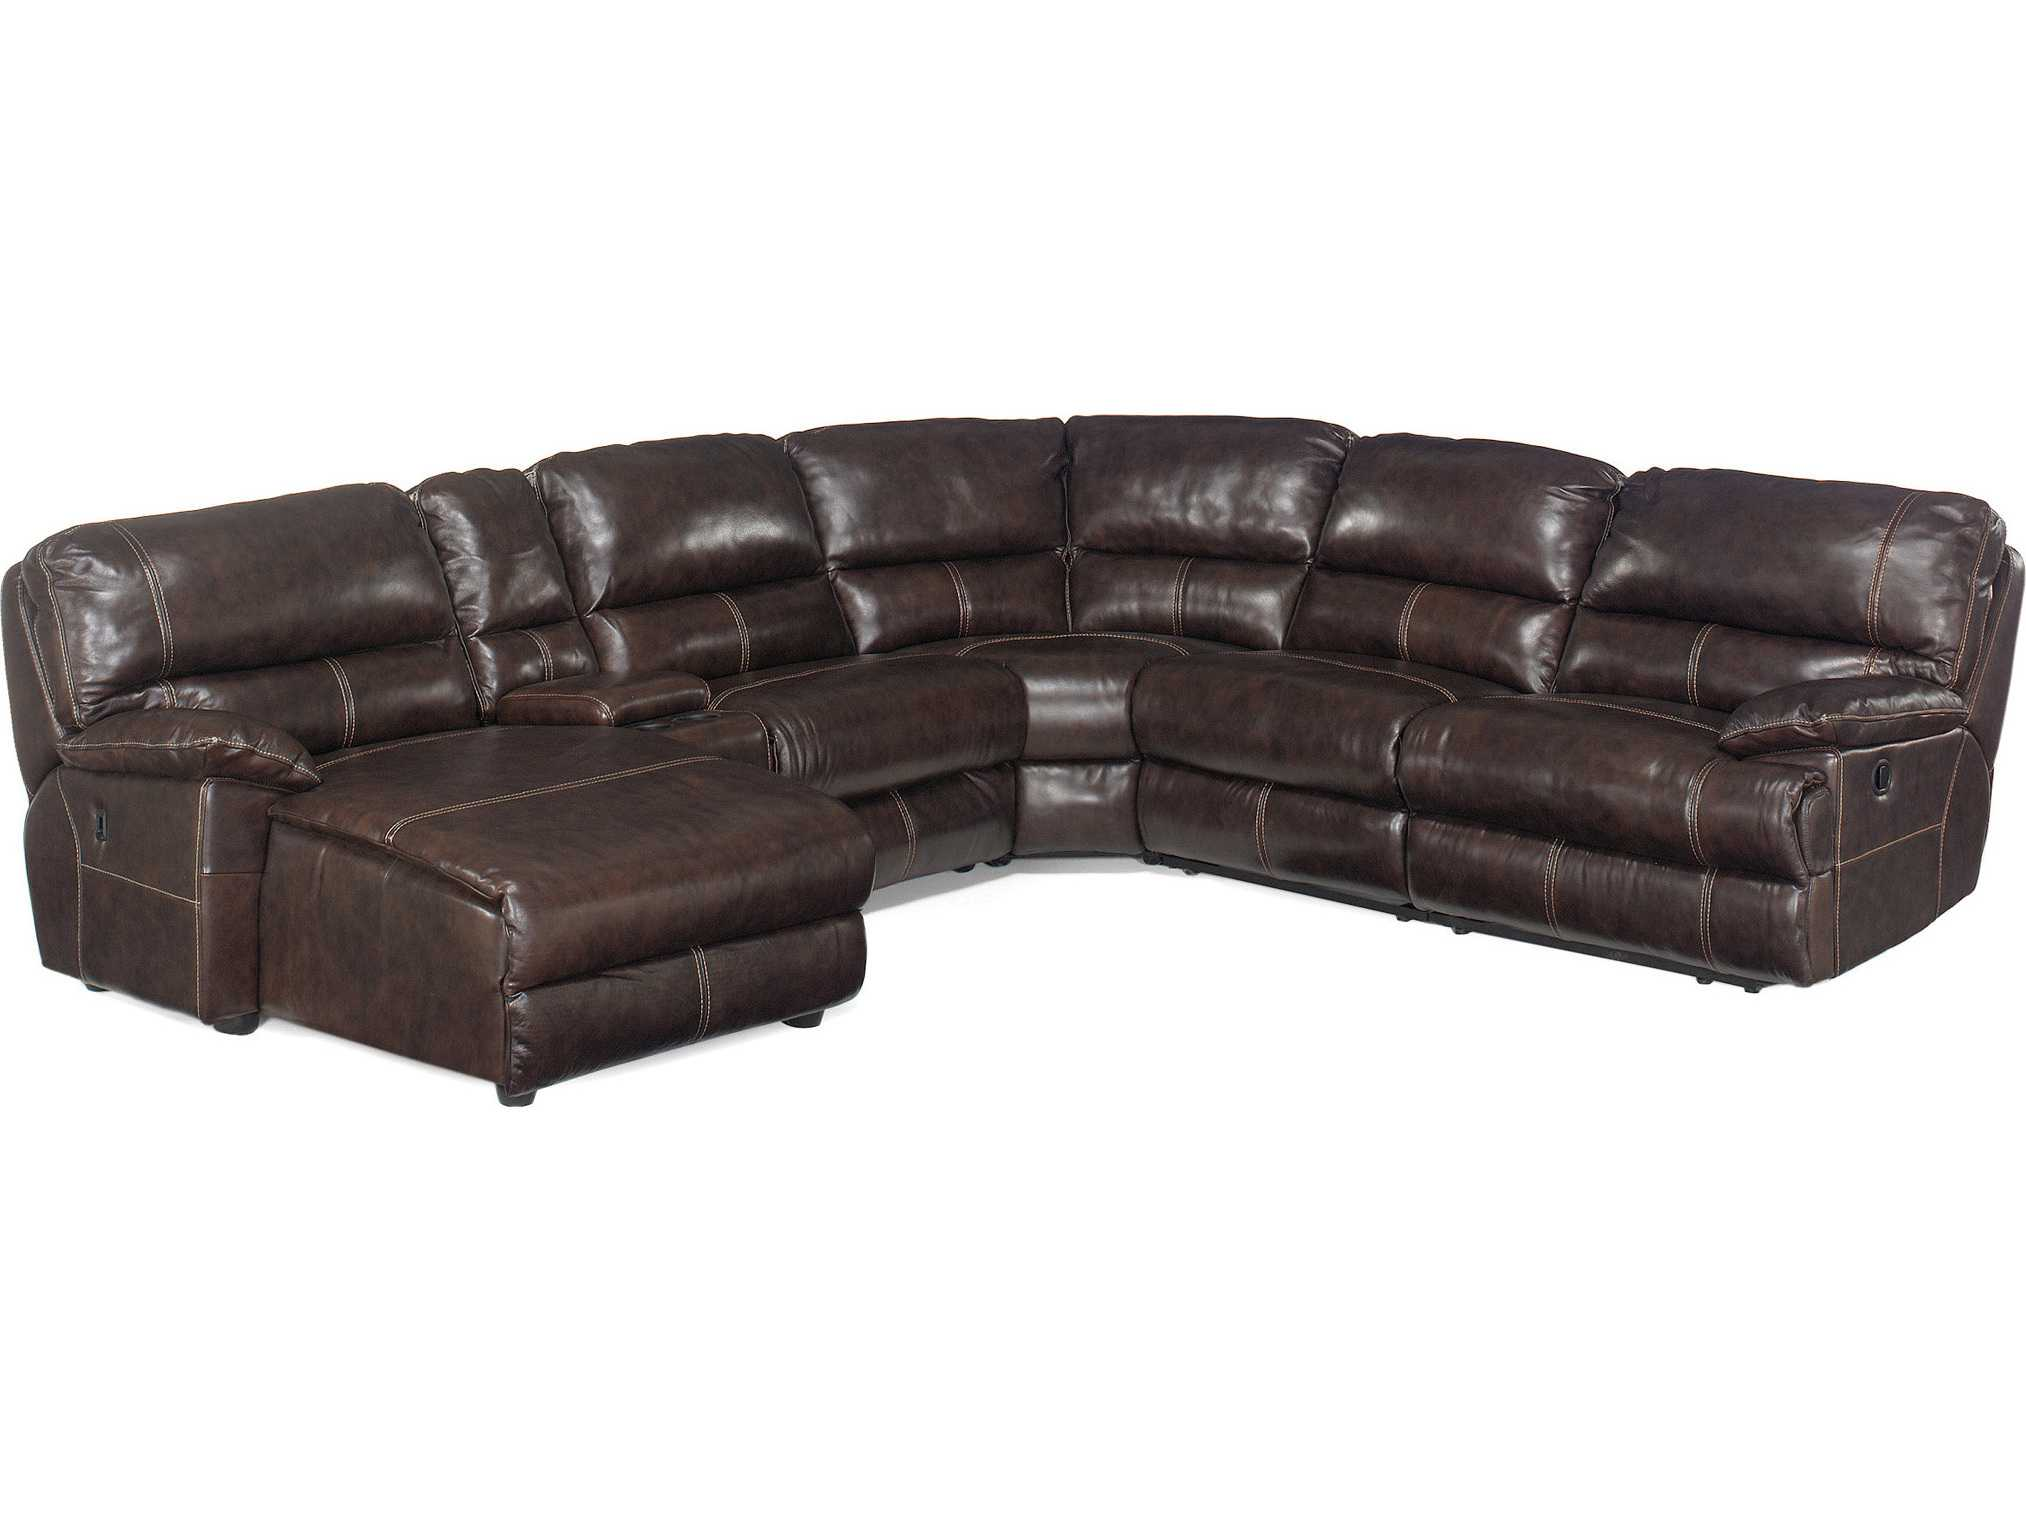 left chaise sofa sectional slipcover 2 seater dimensions in inches hooker furniture espresso 6 piece with hand